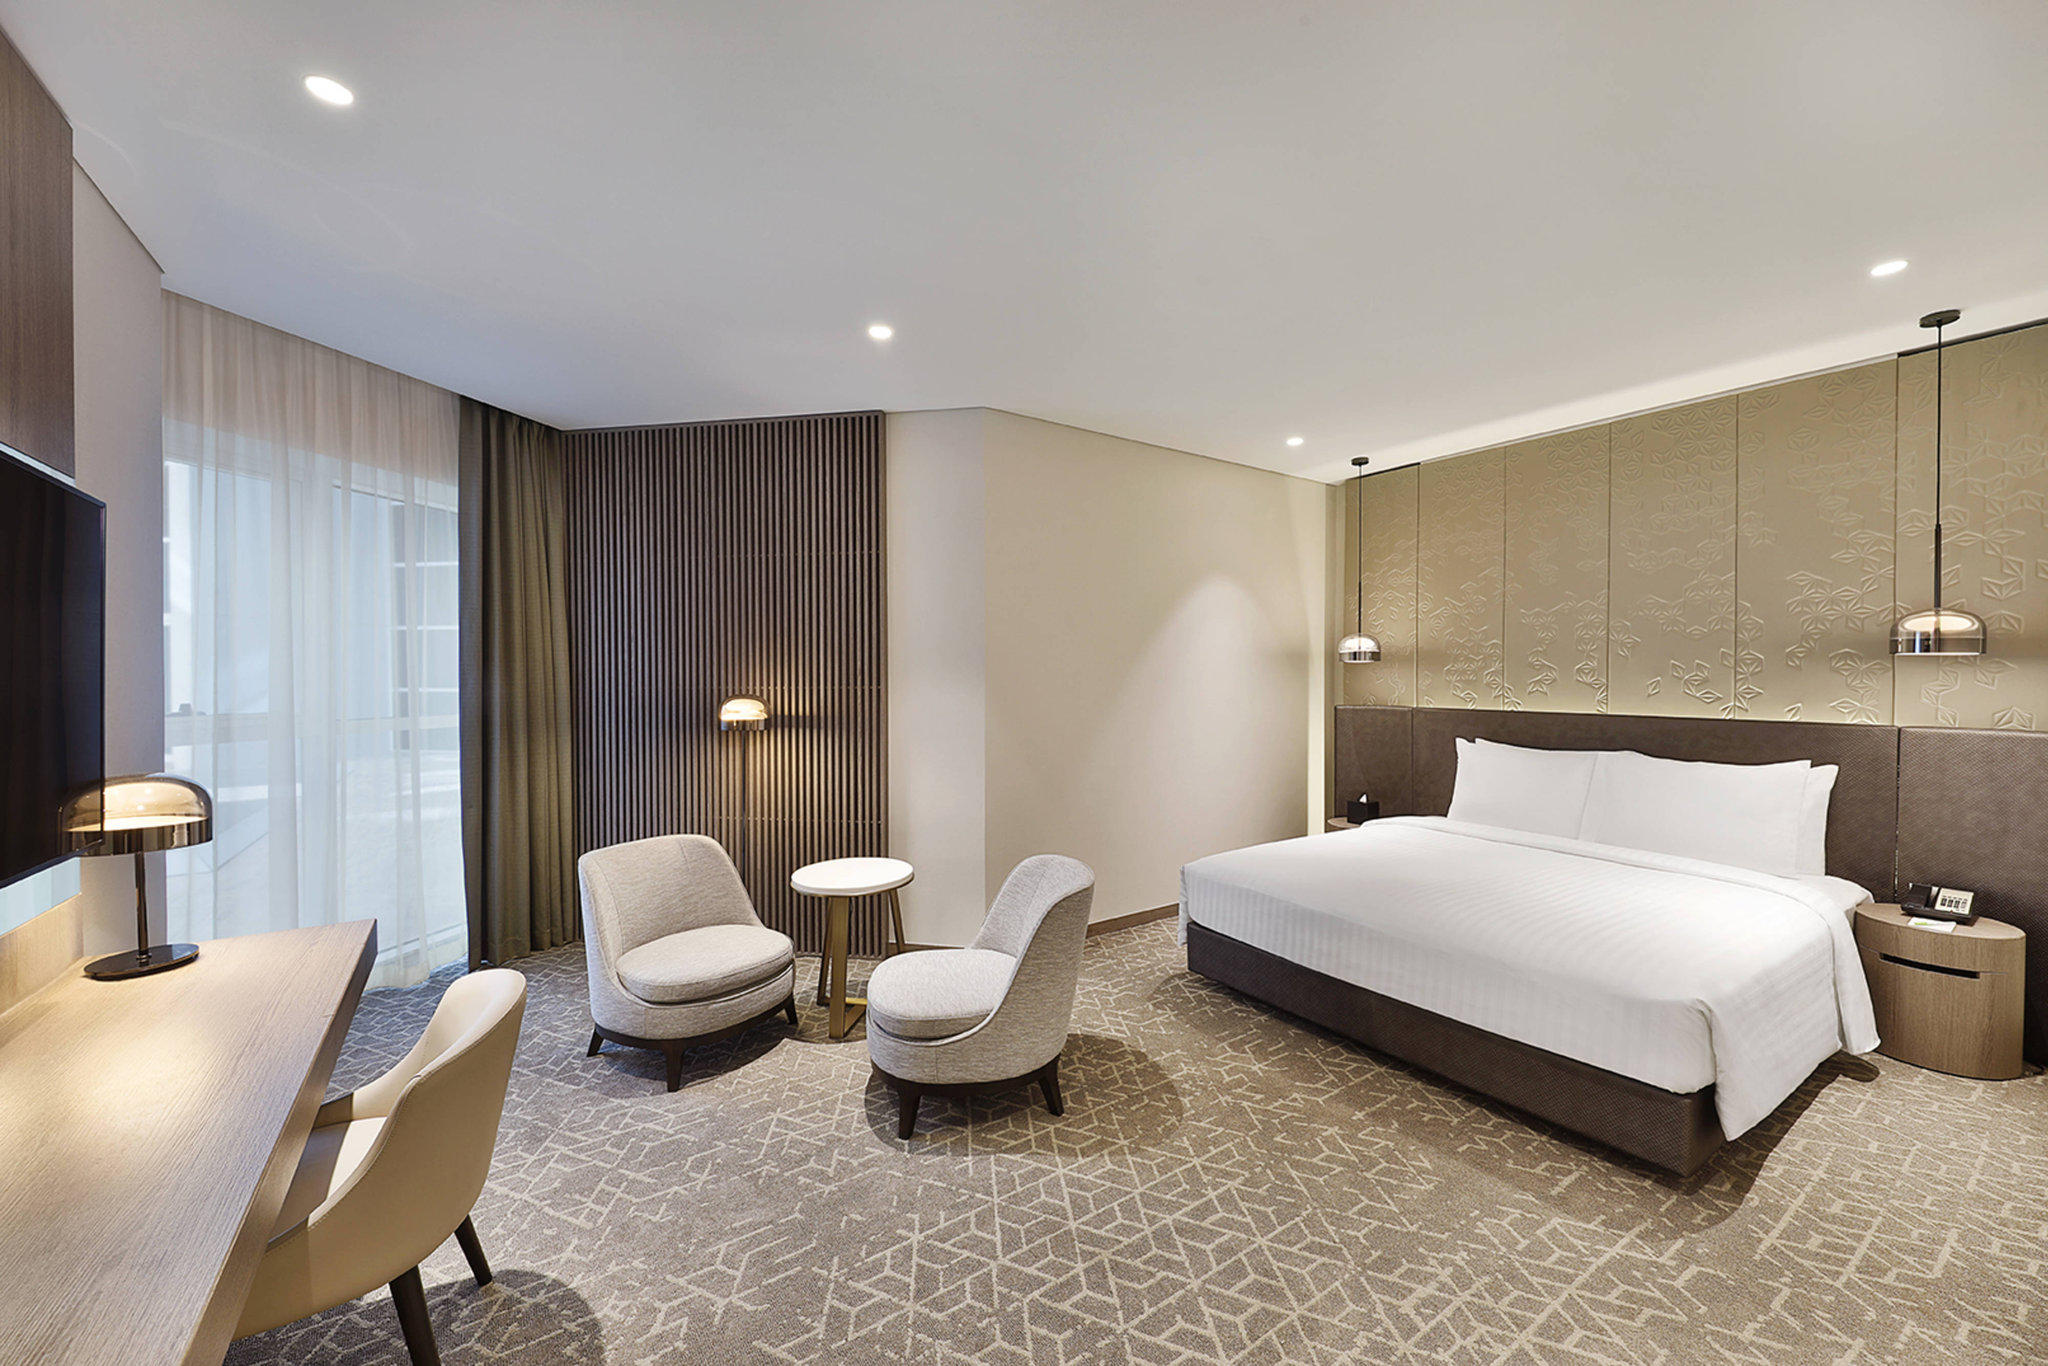 Courtyard by Marriott Al Barsha, Dubai